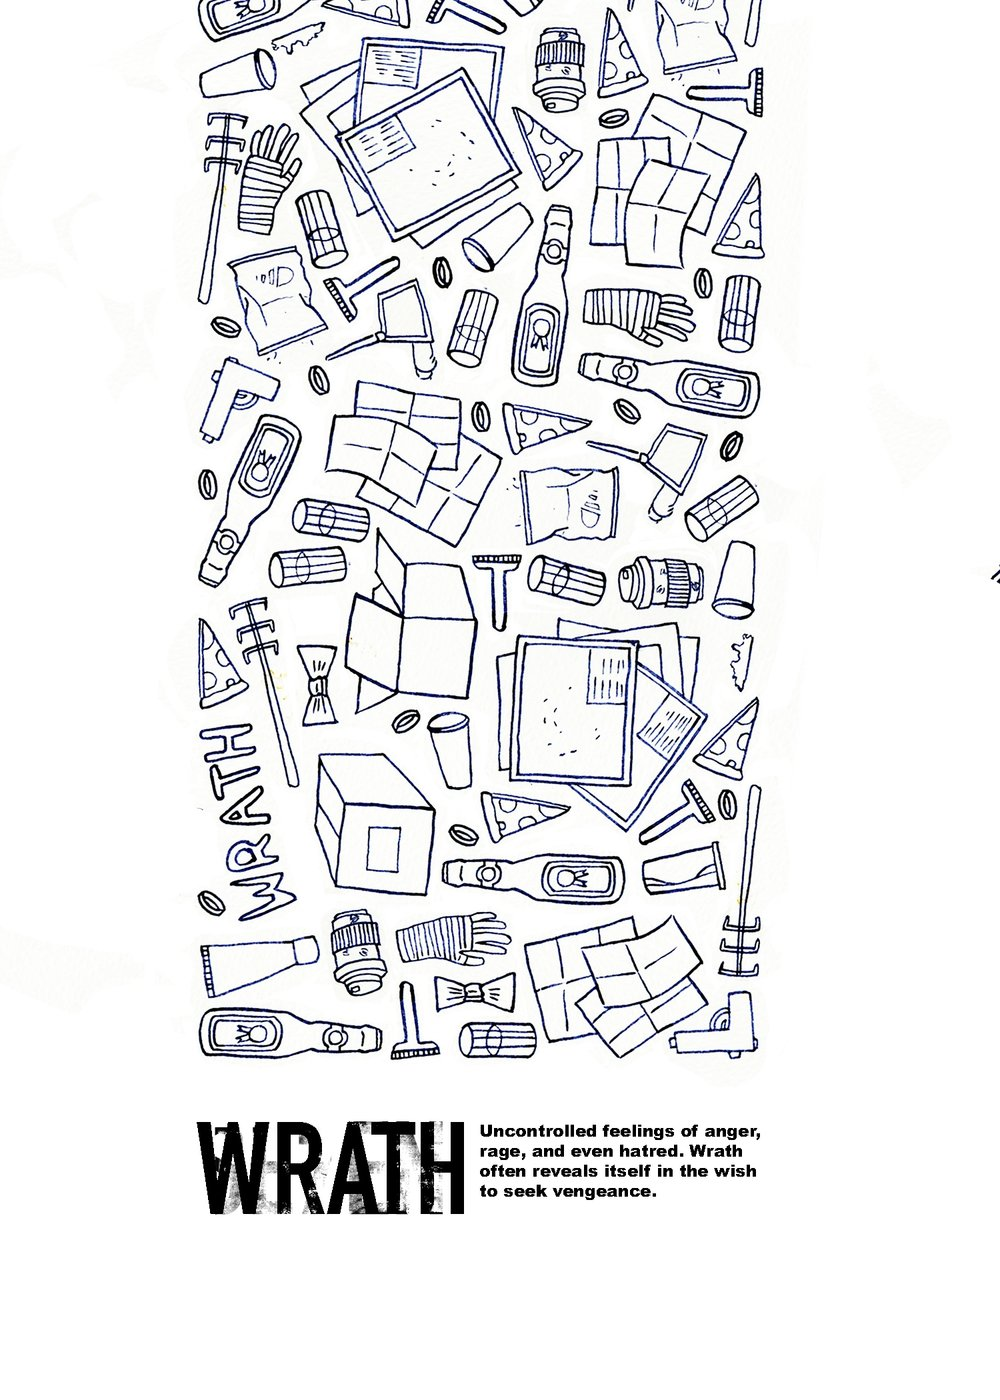 thesis-se7en-postcard wrath.jpg